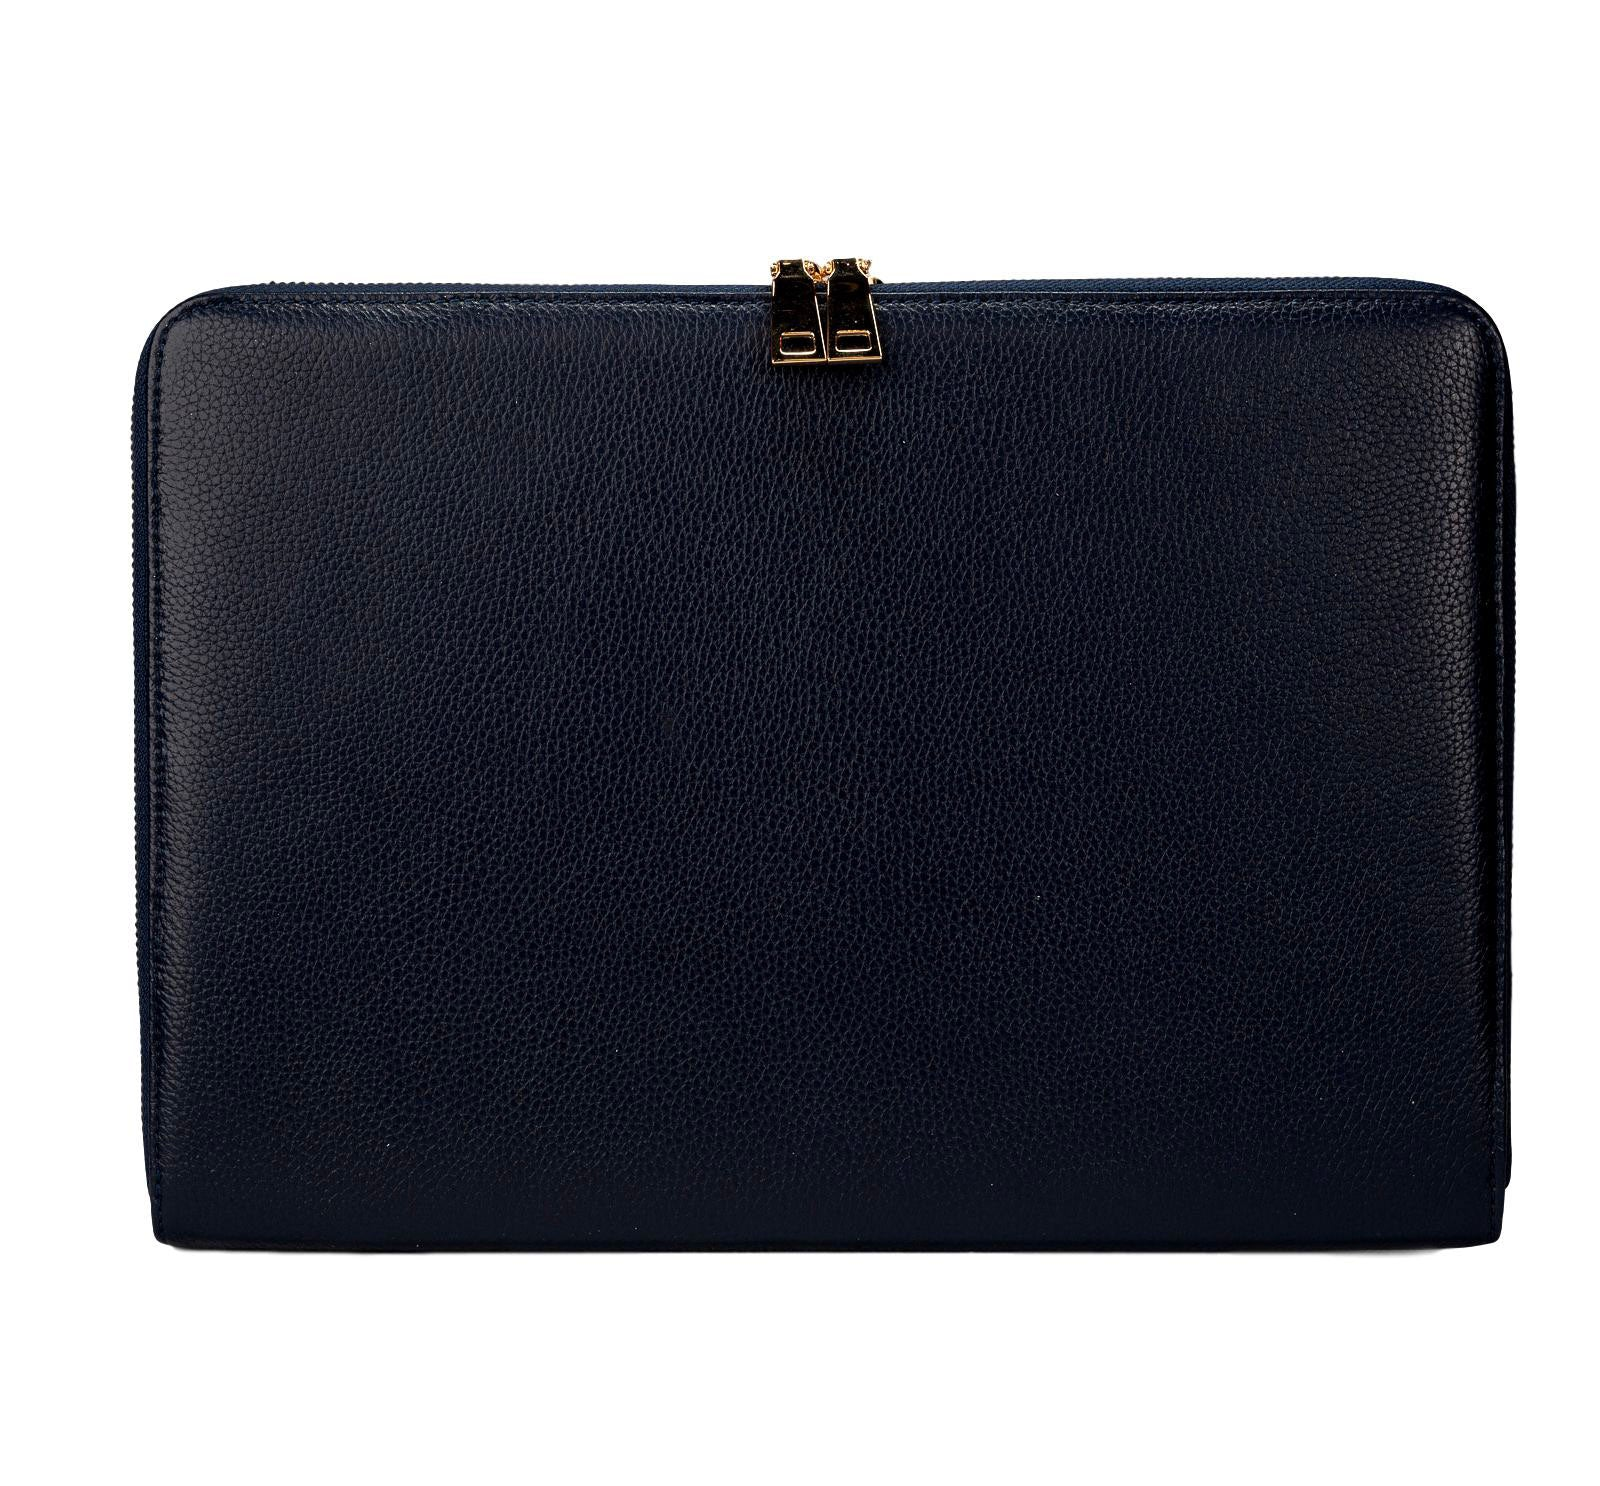 "Mon Purse Pebbled Laptop Bag 13"" in Navy"